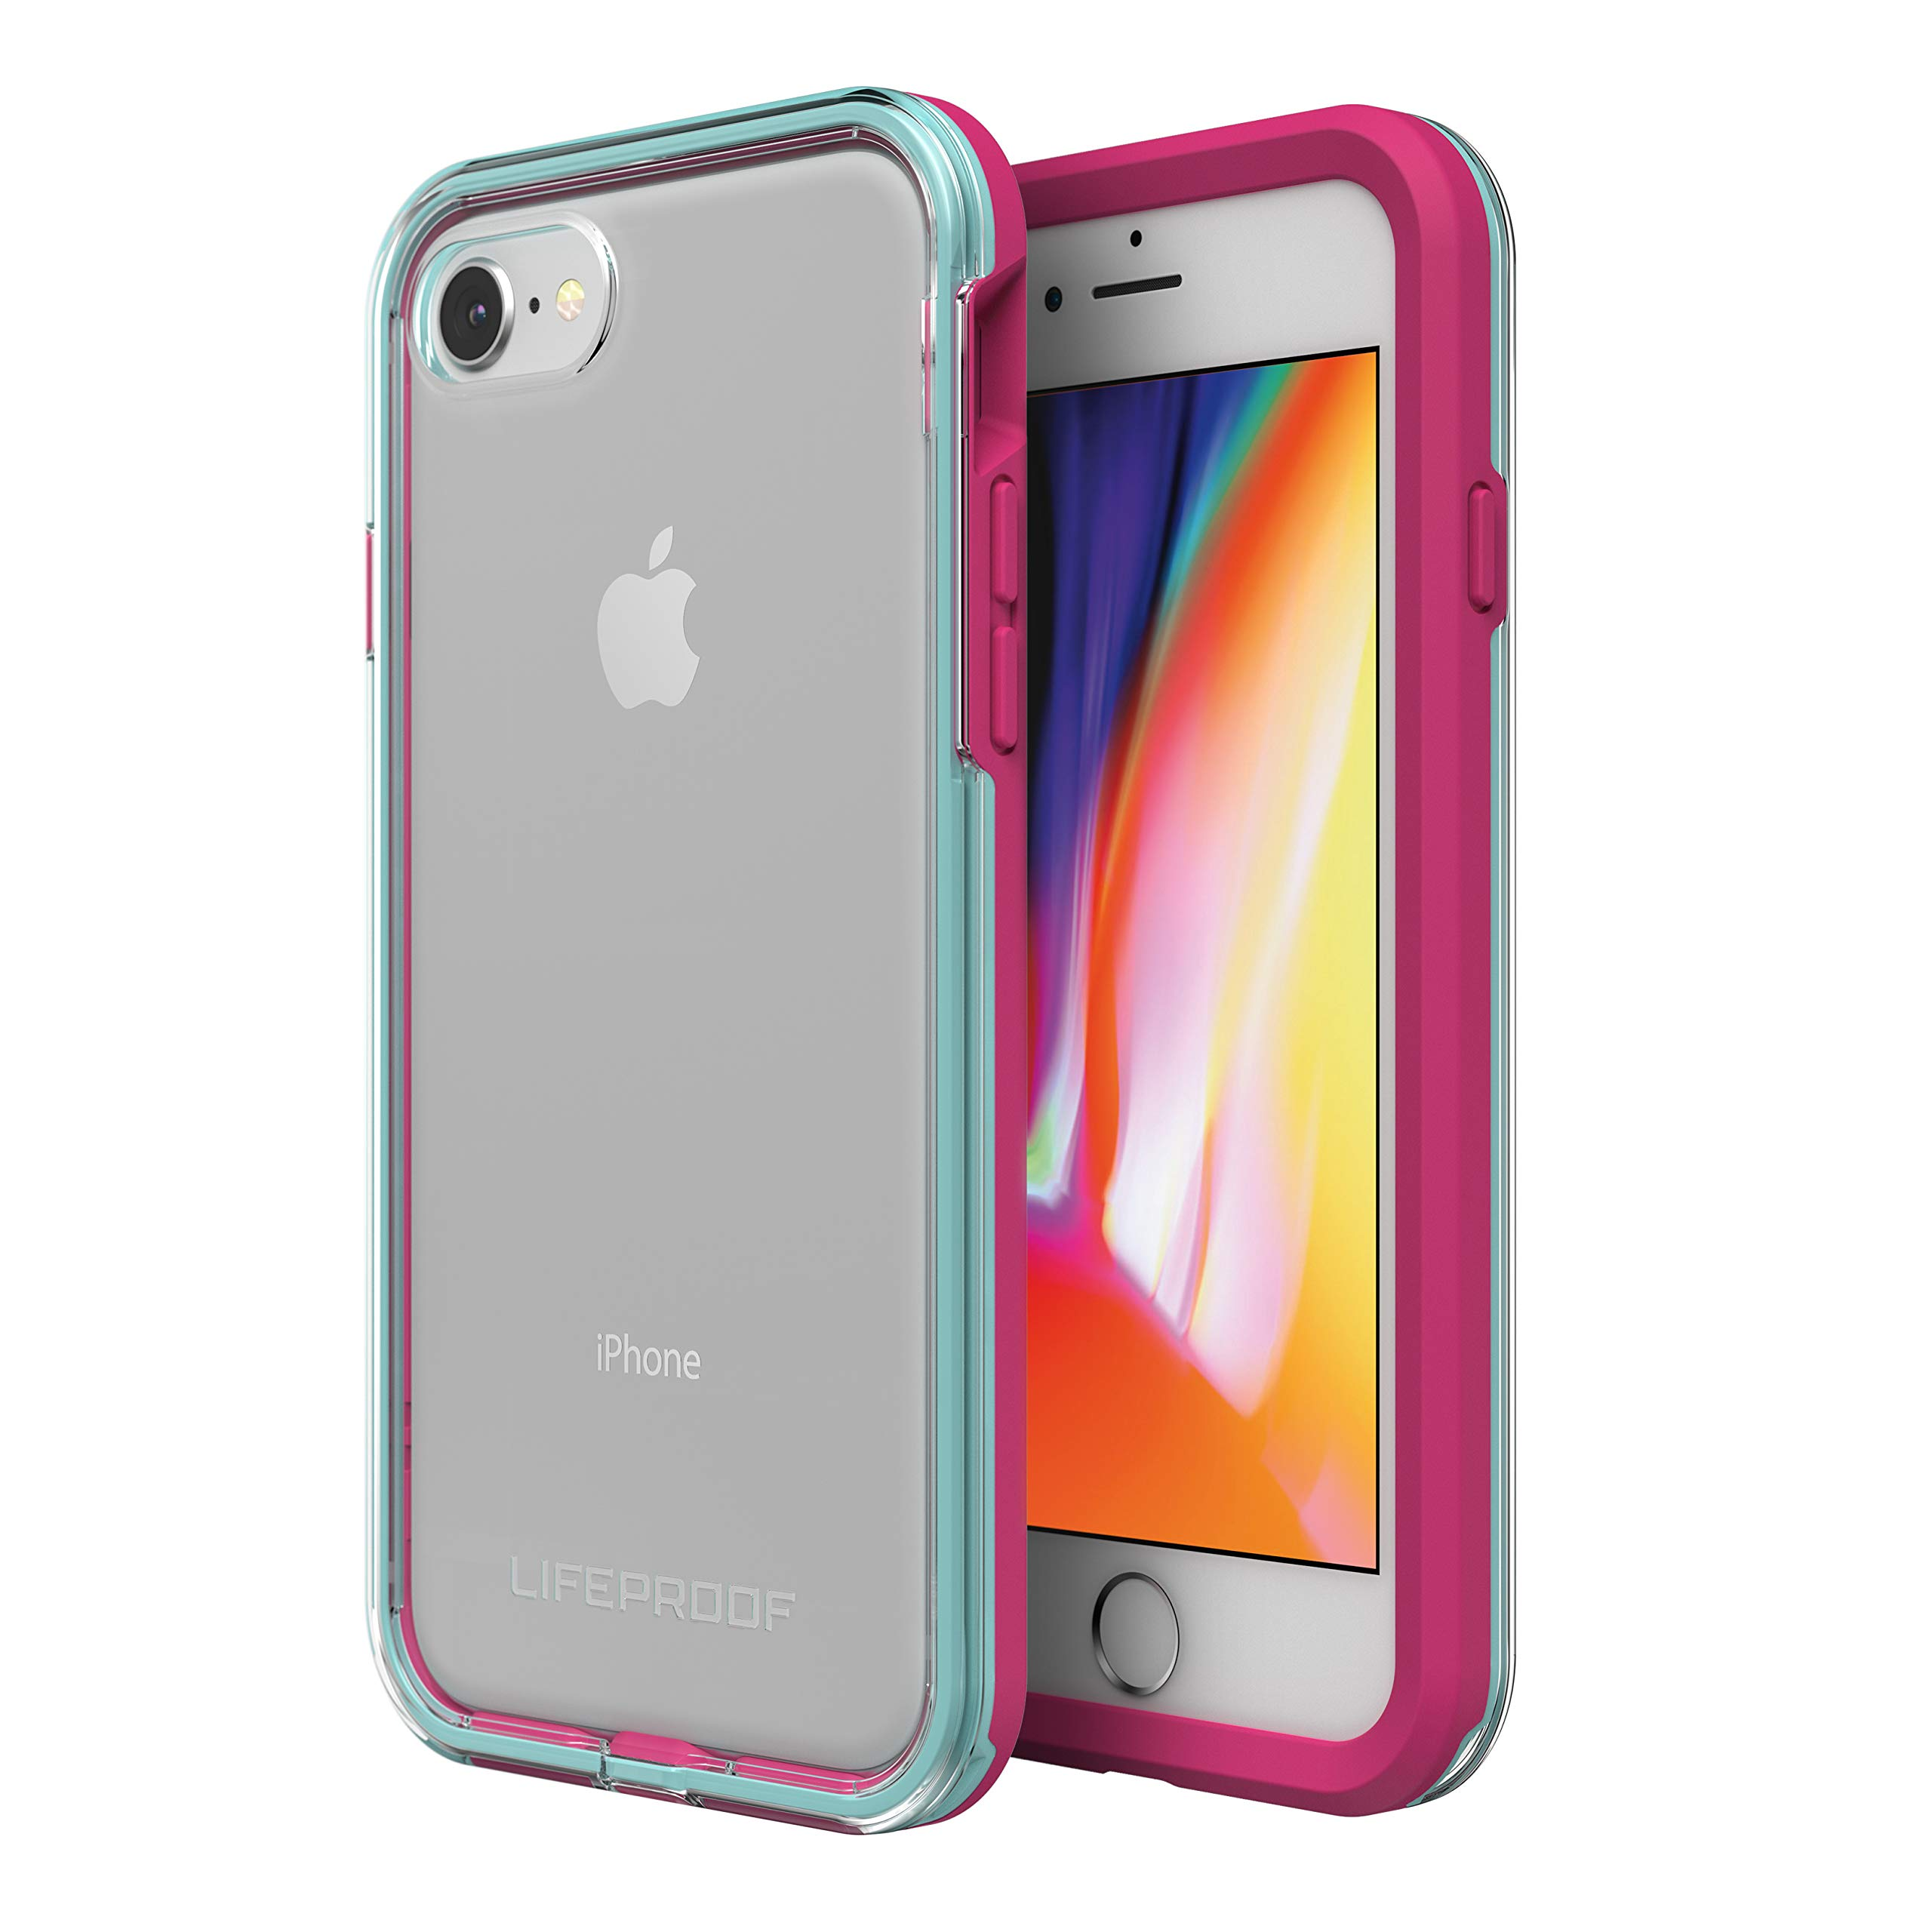 Lifeproof SLAM Series Case for iPhone SE (2nd Gen) and iPhone 8/7 (NOT Plus) - Retail Packaging - Aloha Sunset (Clear/Blue Tint/Process Magenta)